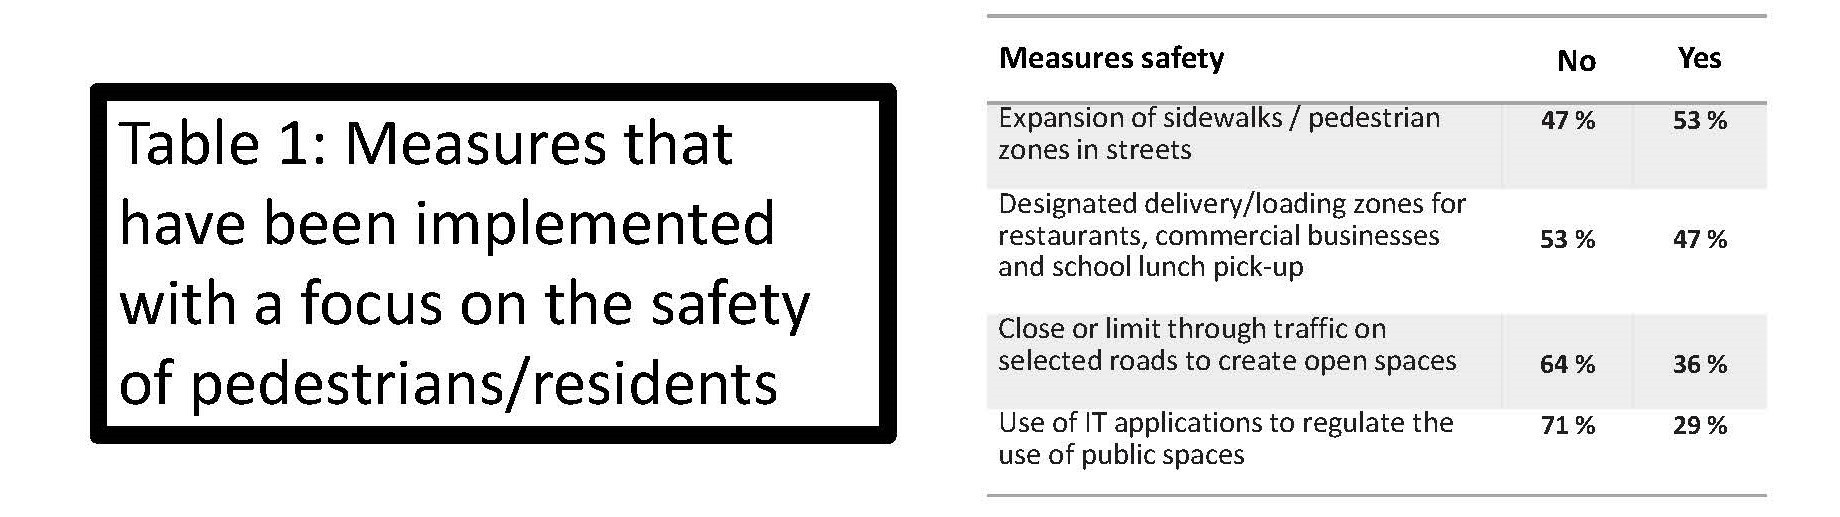 Measures that have been implemented with a focus on the safety of pedestrians/residents